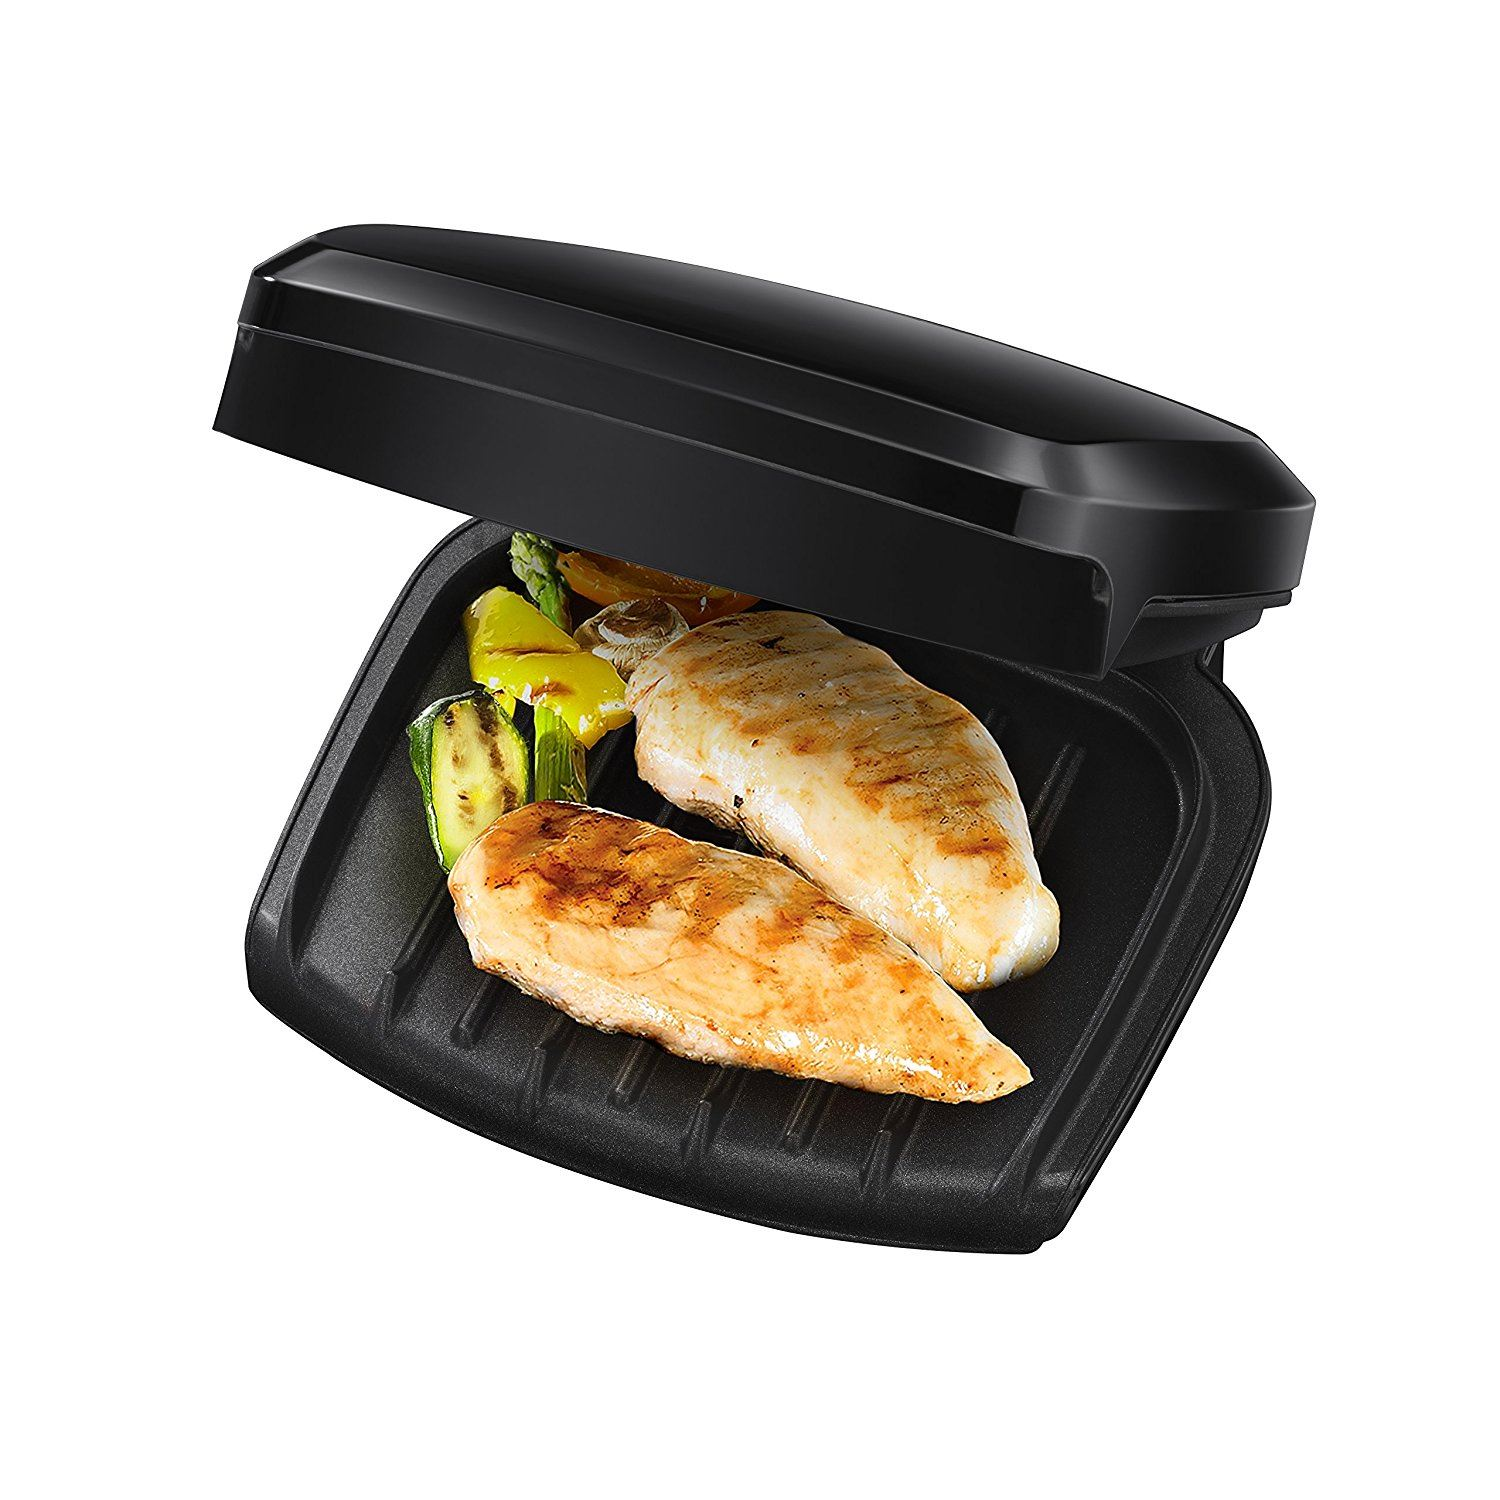 George foreman 23400 compact non stick 2 portion grill new for George foreman grill fish